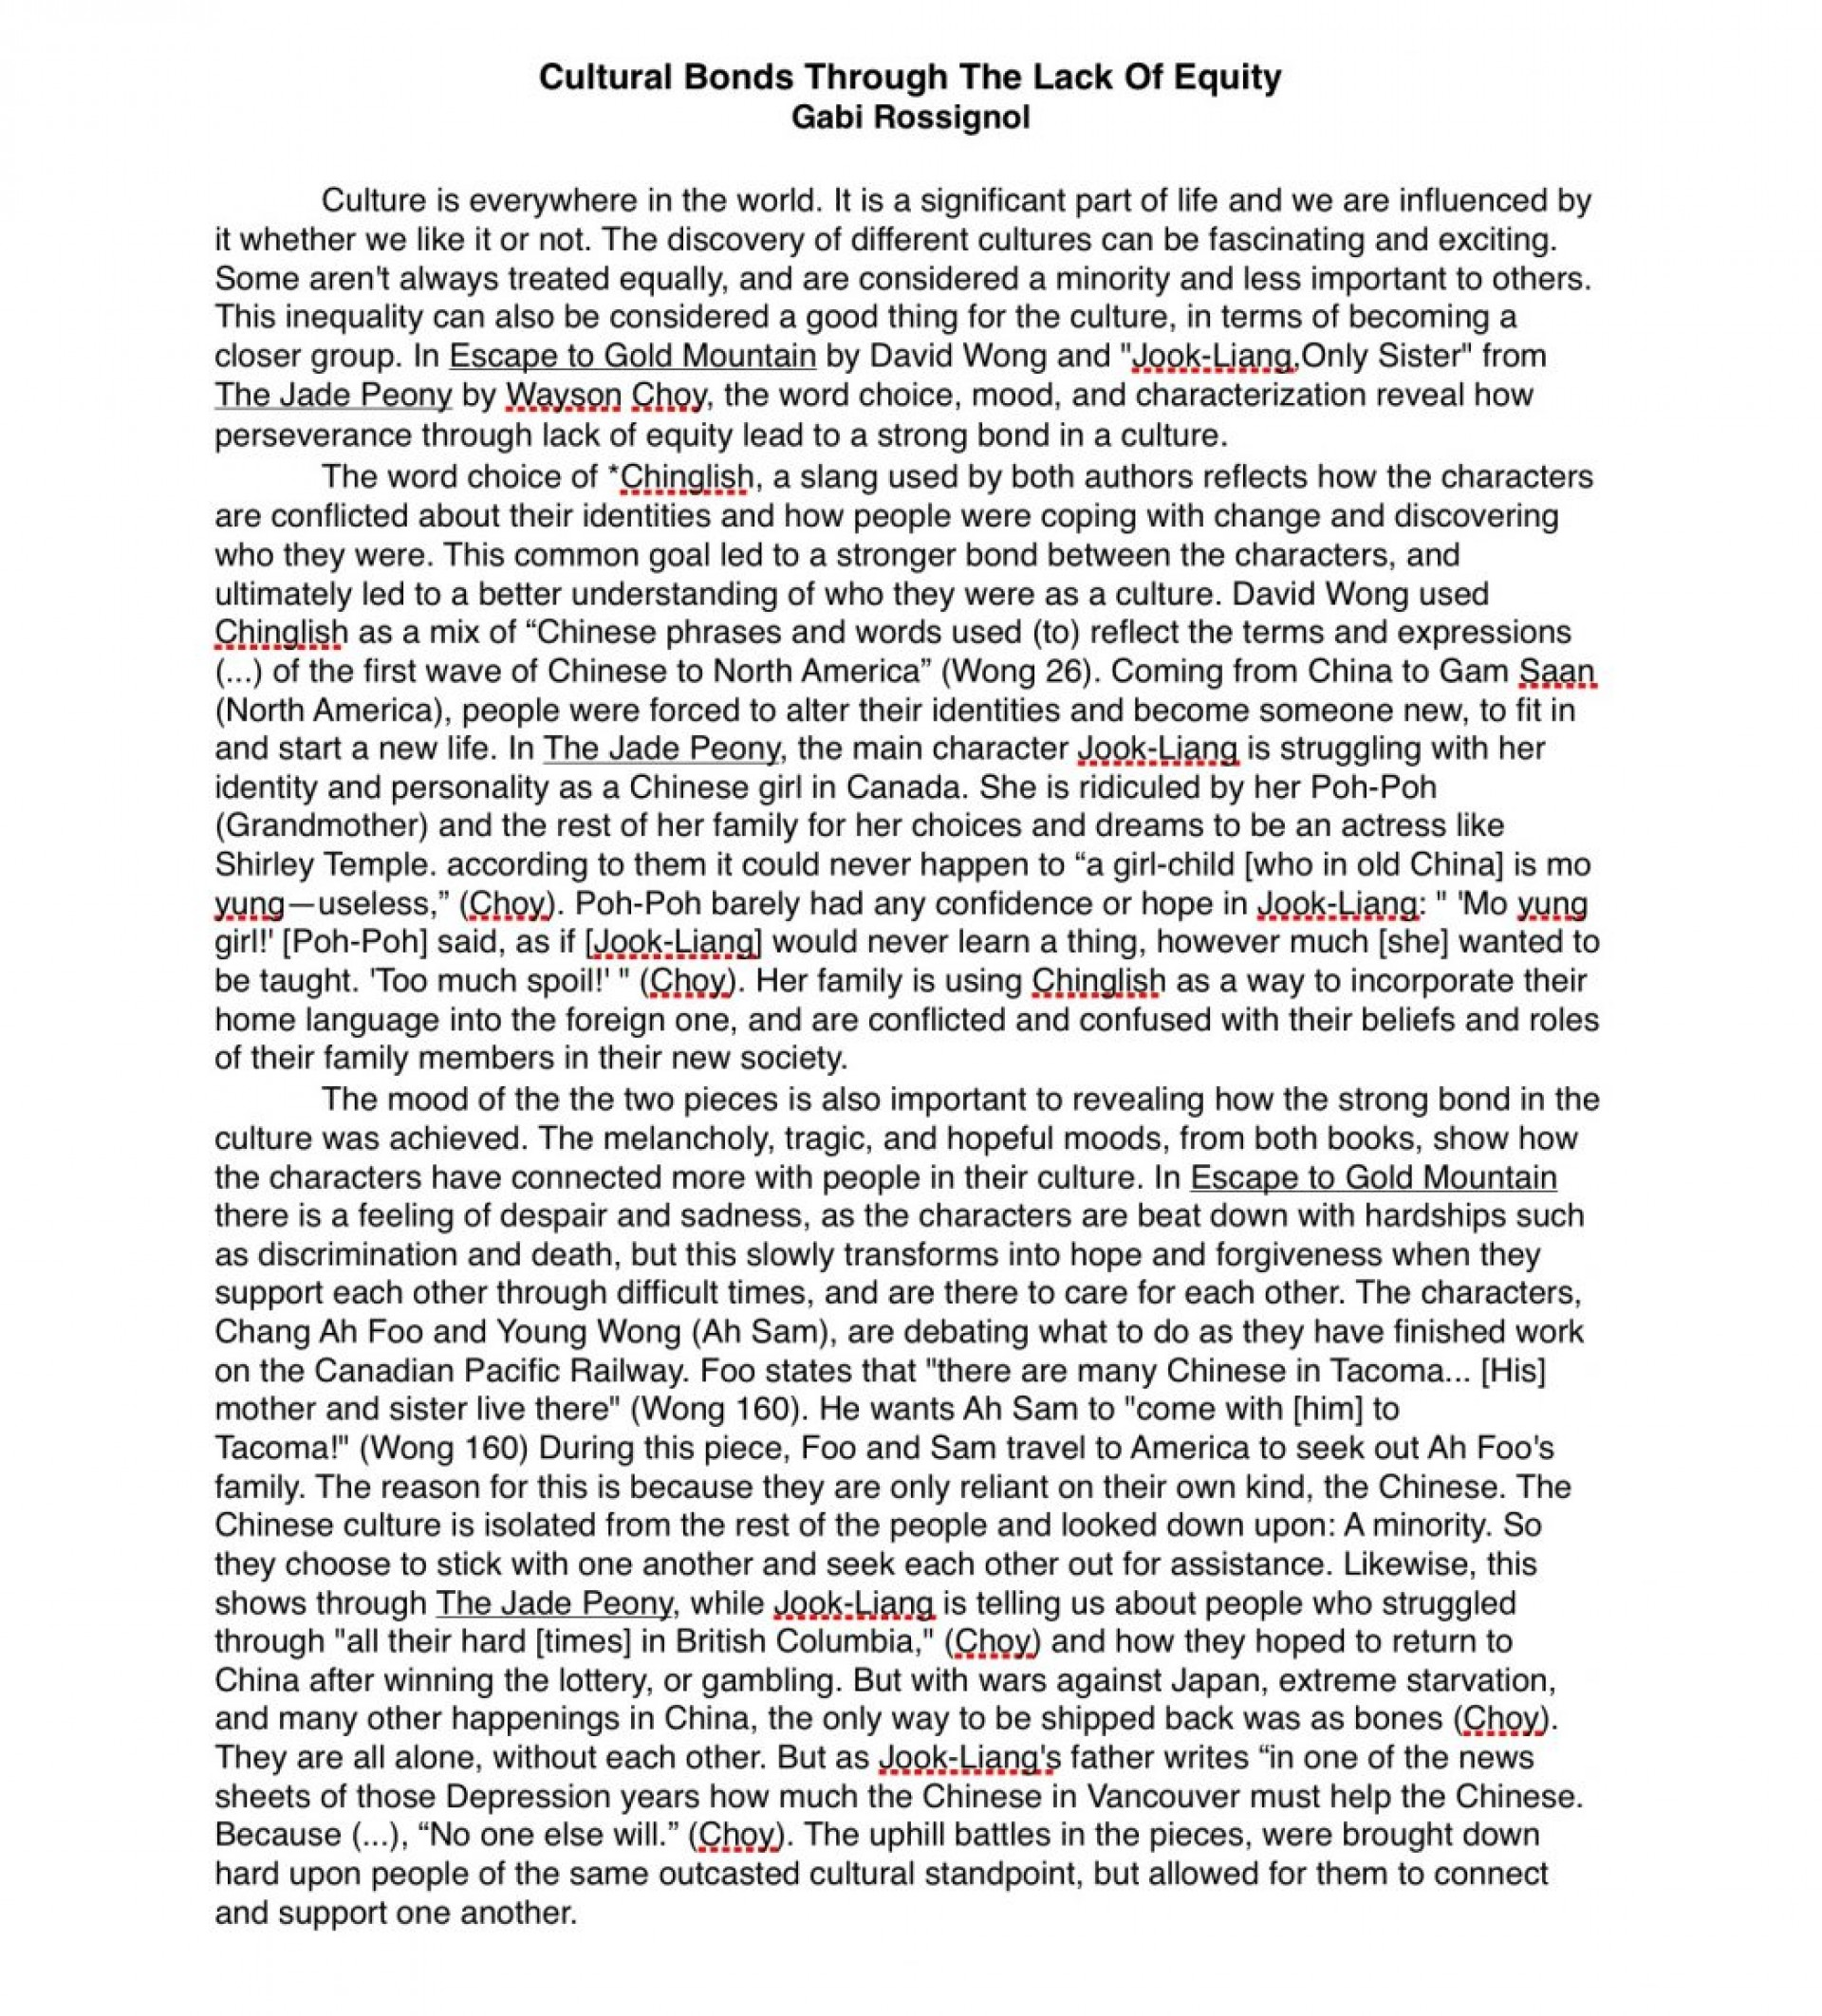 002 Essay On Who Am I Ideas Describe Yourself Clearly In Introductions Image 1048x1160 Of Awesome As A Person Filipino Writing Aim Life 1920